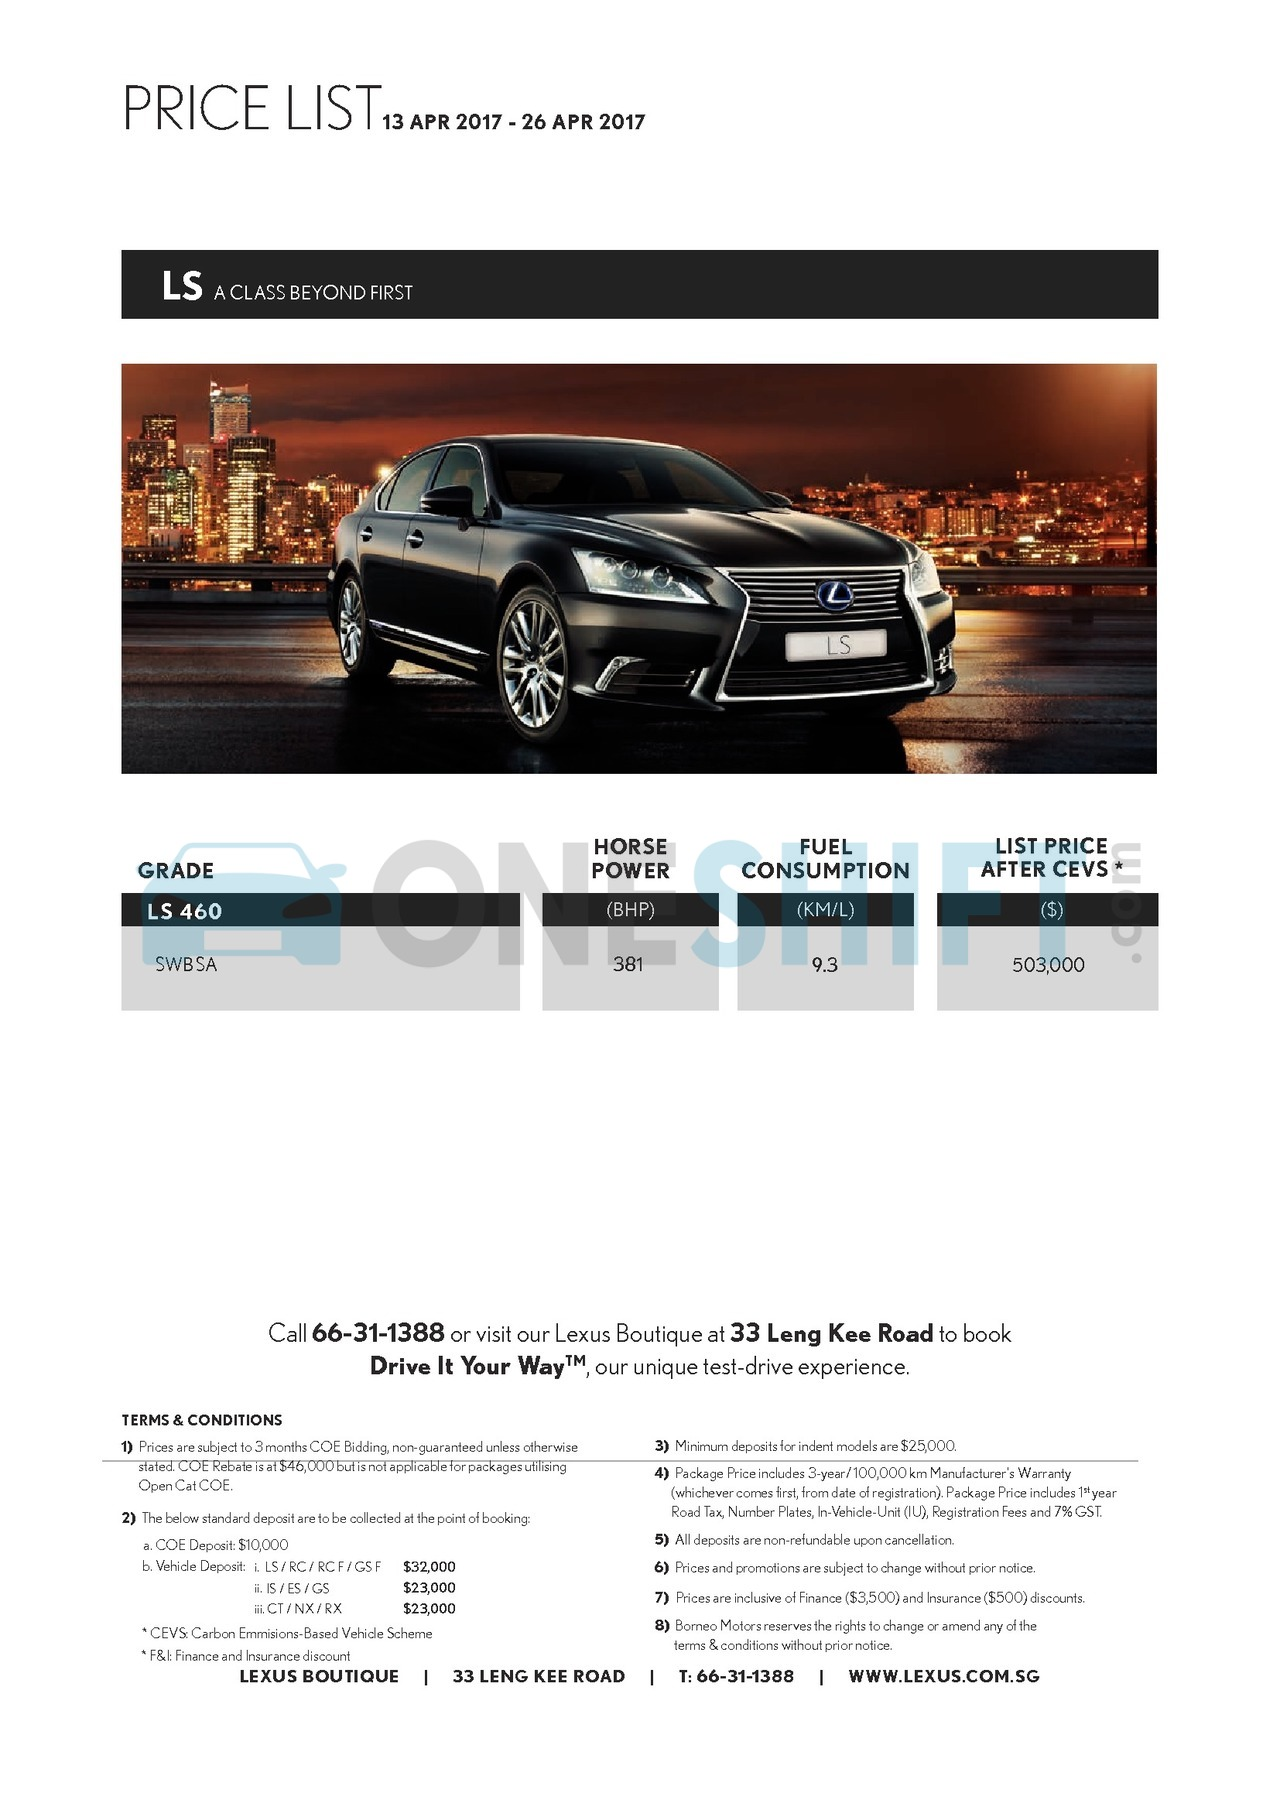 lexus Price List 4-13-2017 Page 3